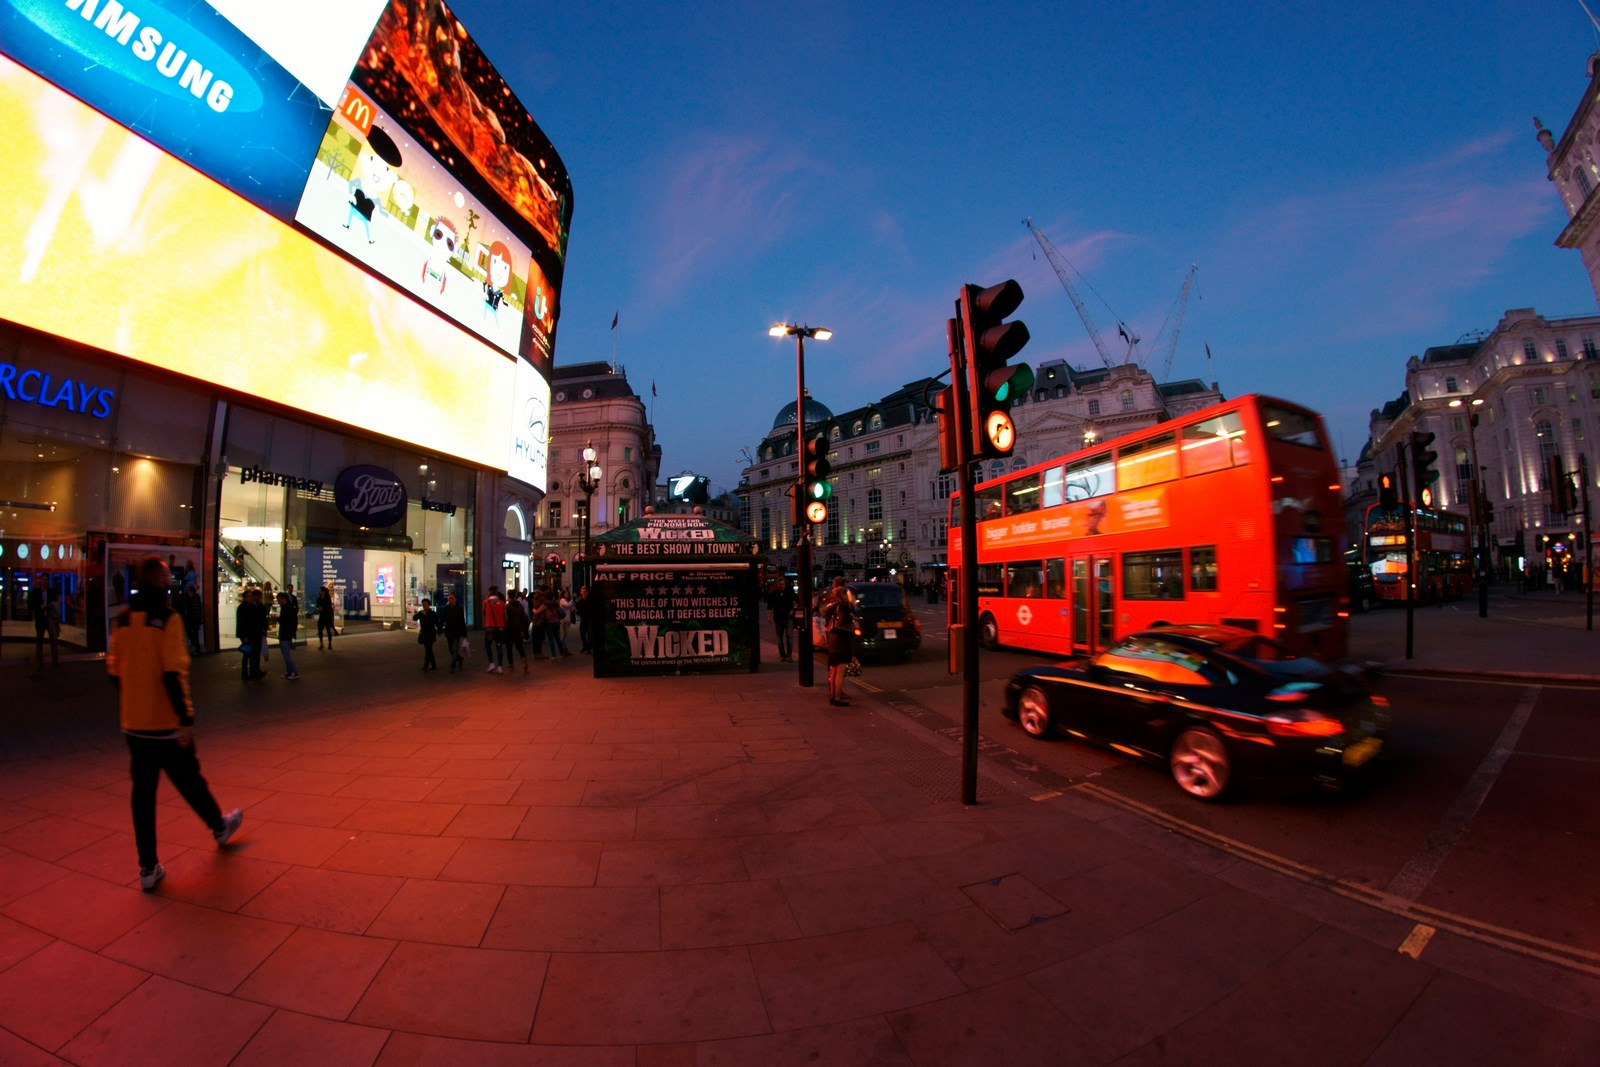 Doppeldeckerbus Piccadilly Circus